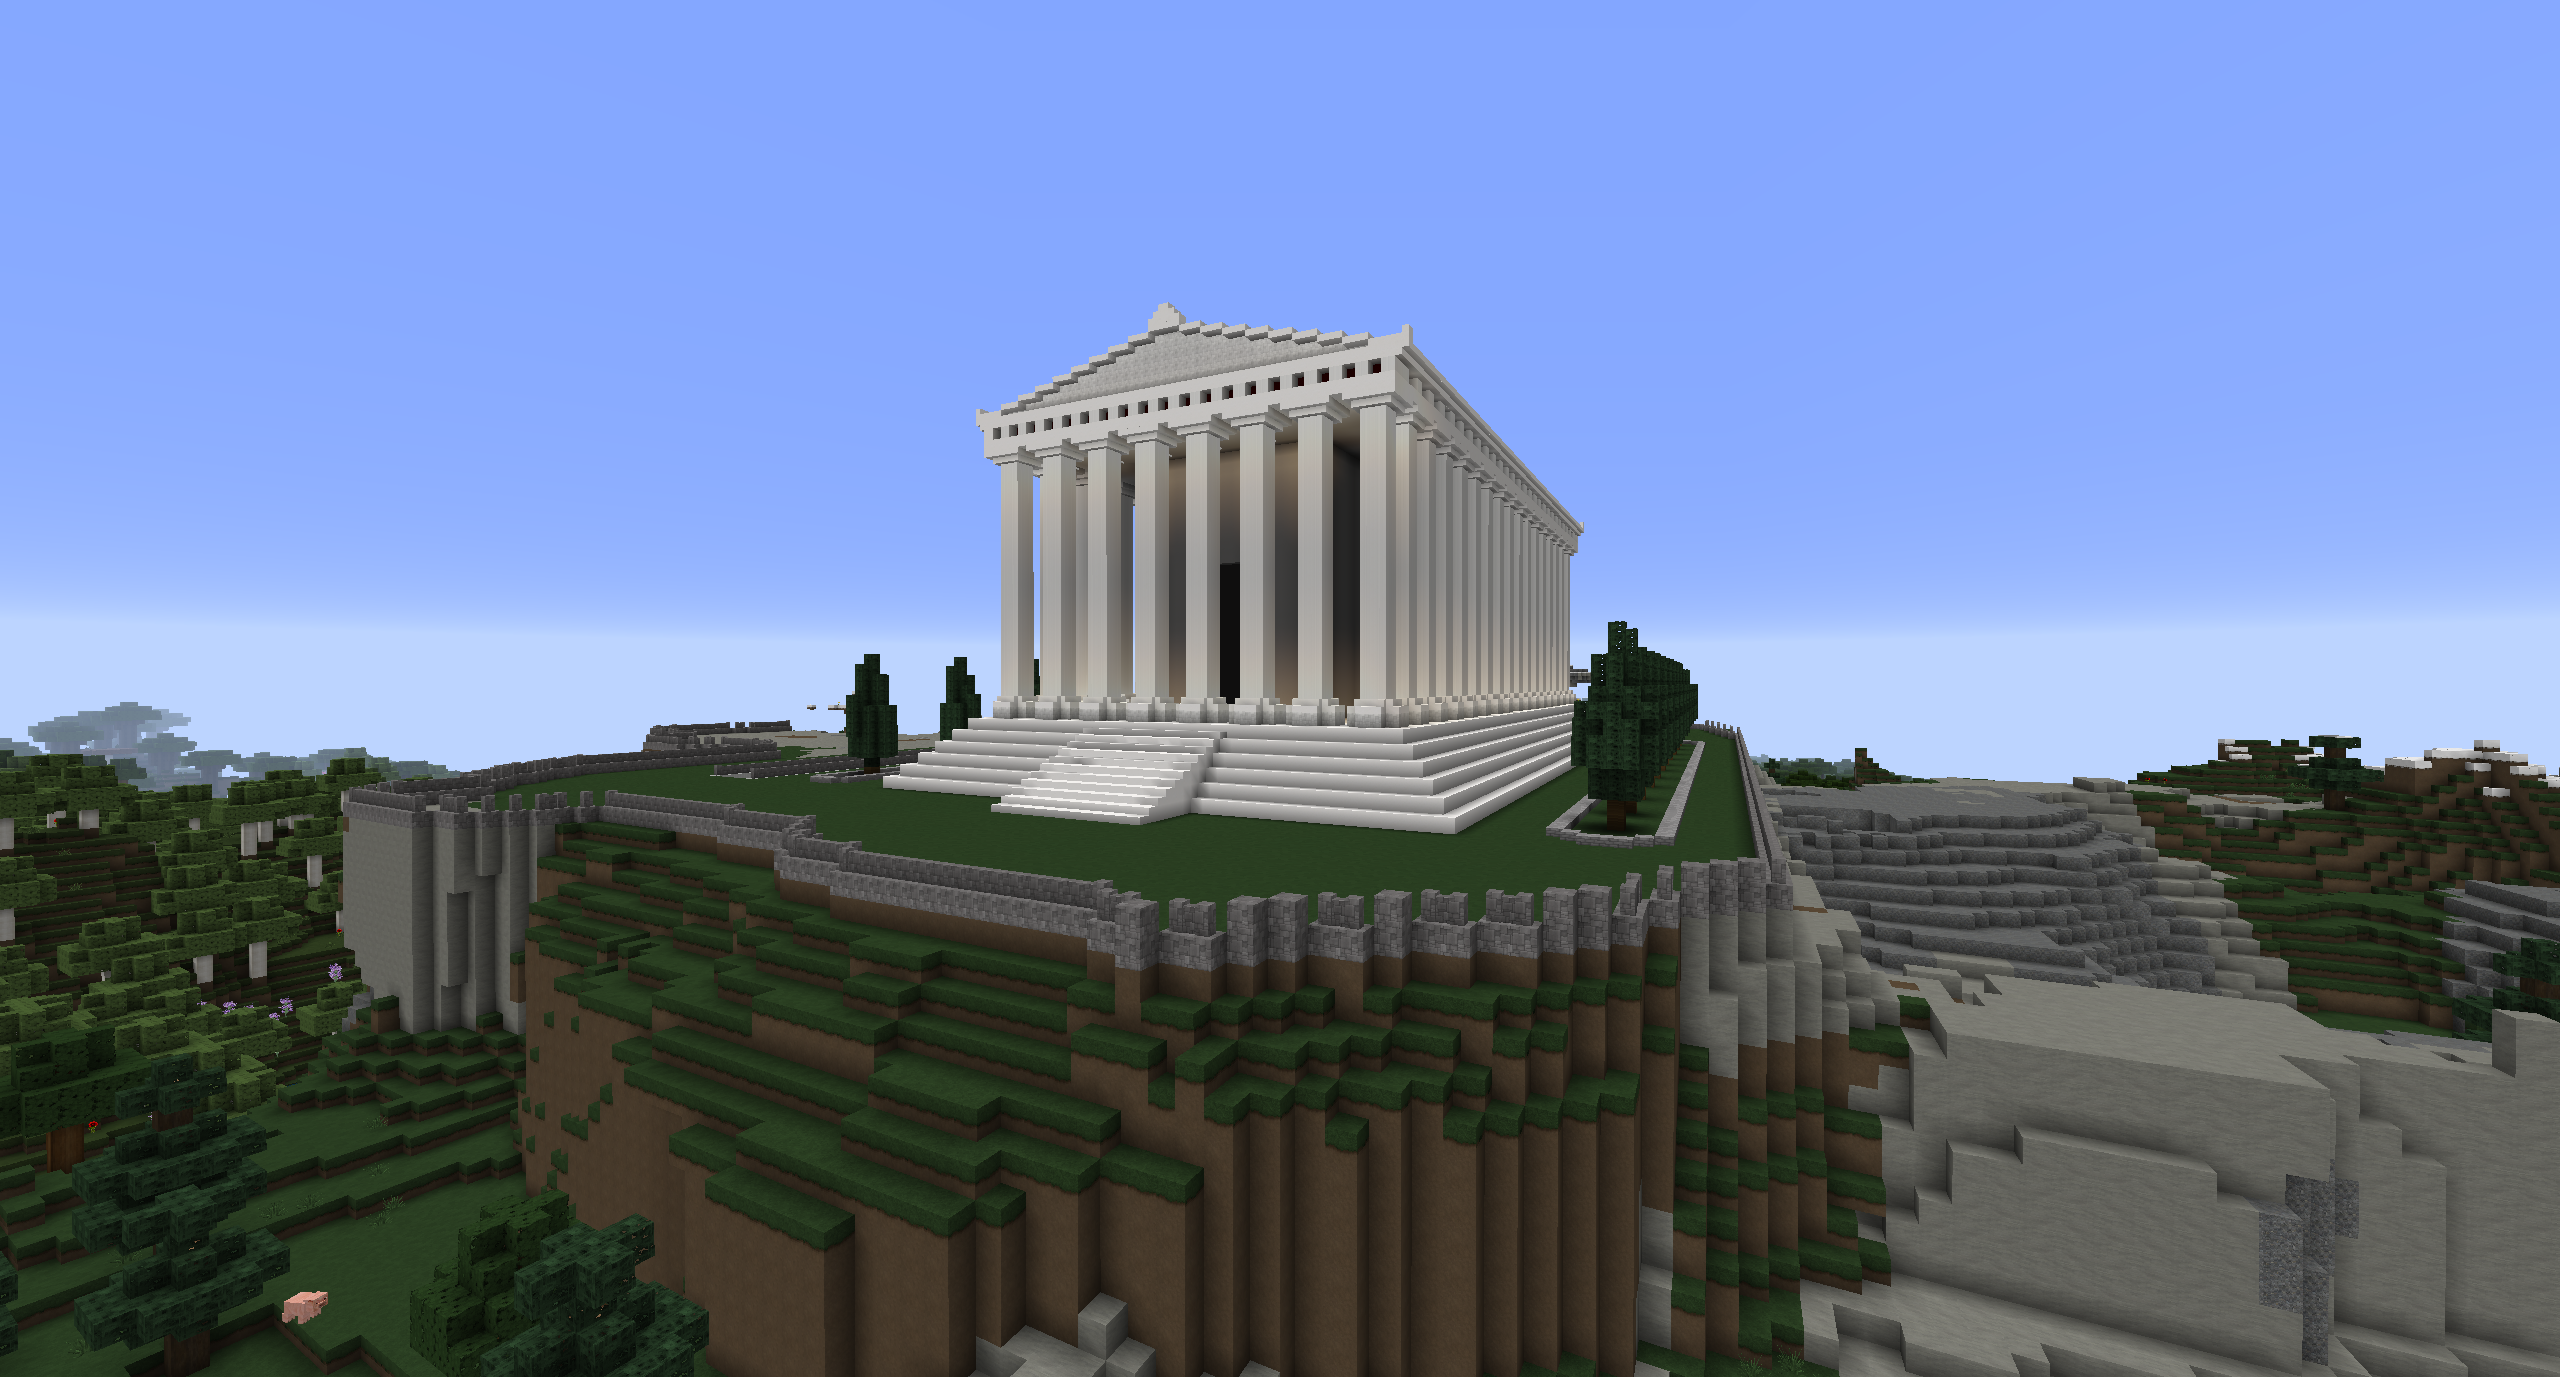 Greek Architecture Minecraft minecraft - the parthenon (wip)minecraftarchitect90 on deviantart